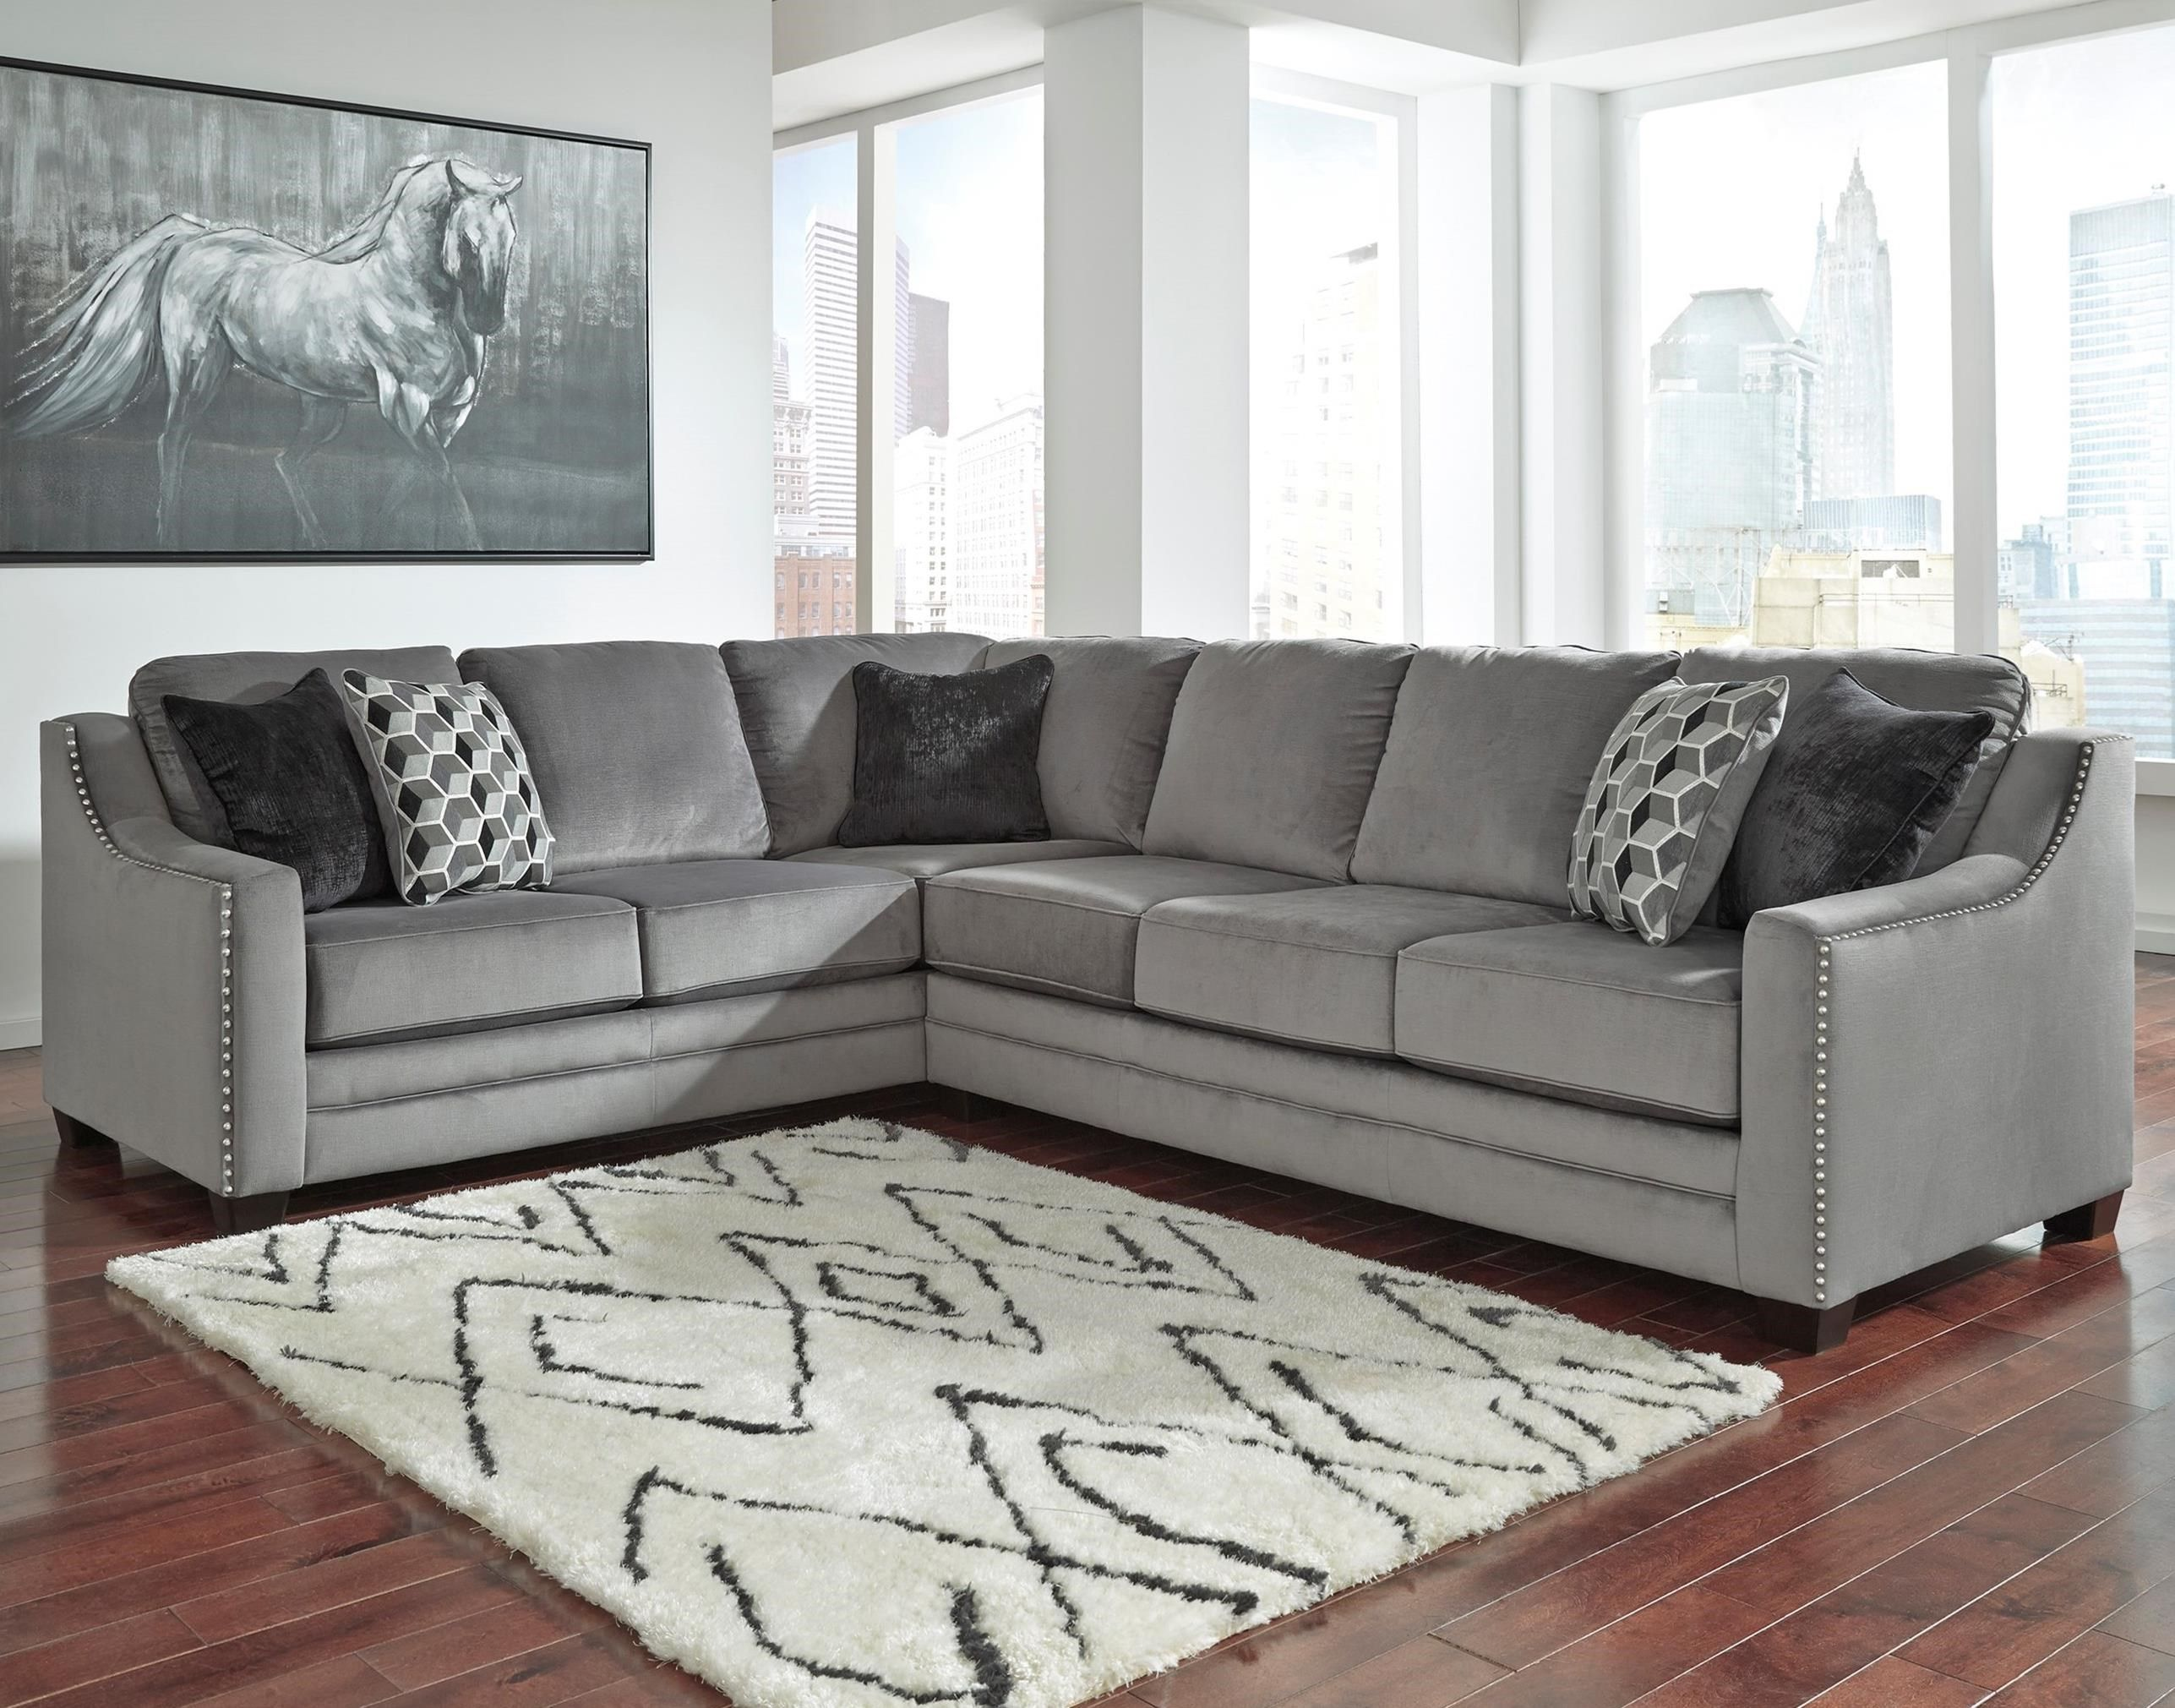 Bicknell 2 Piece Sectional With Right Sofa By Benchcraft